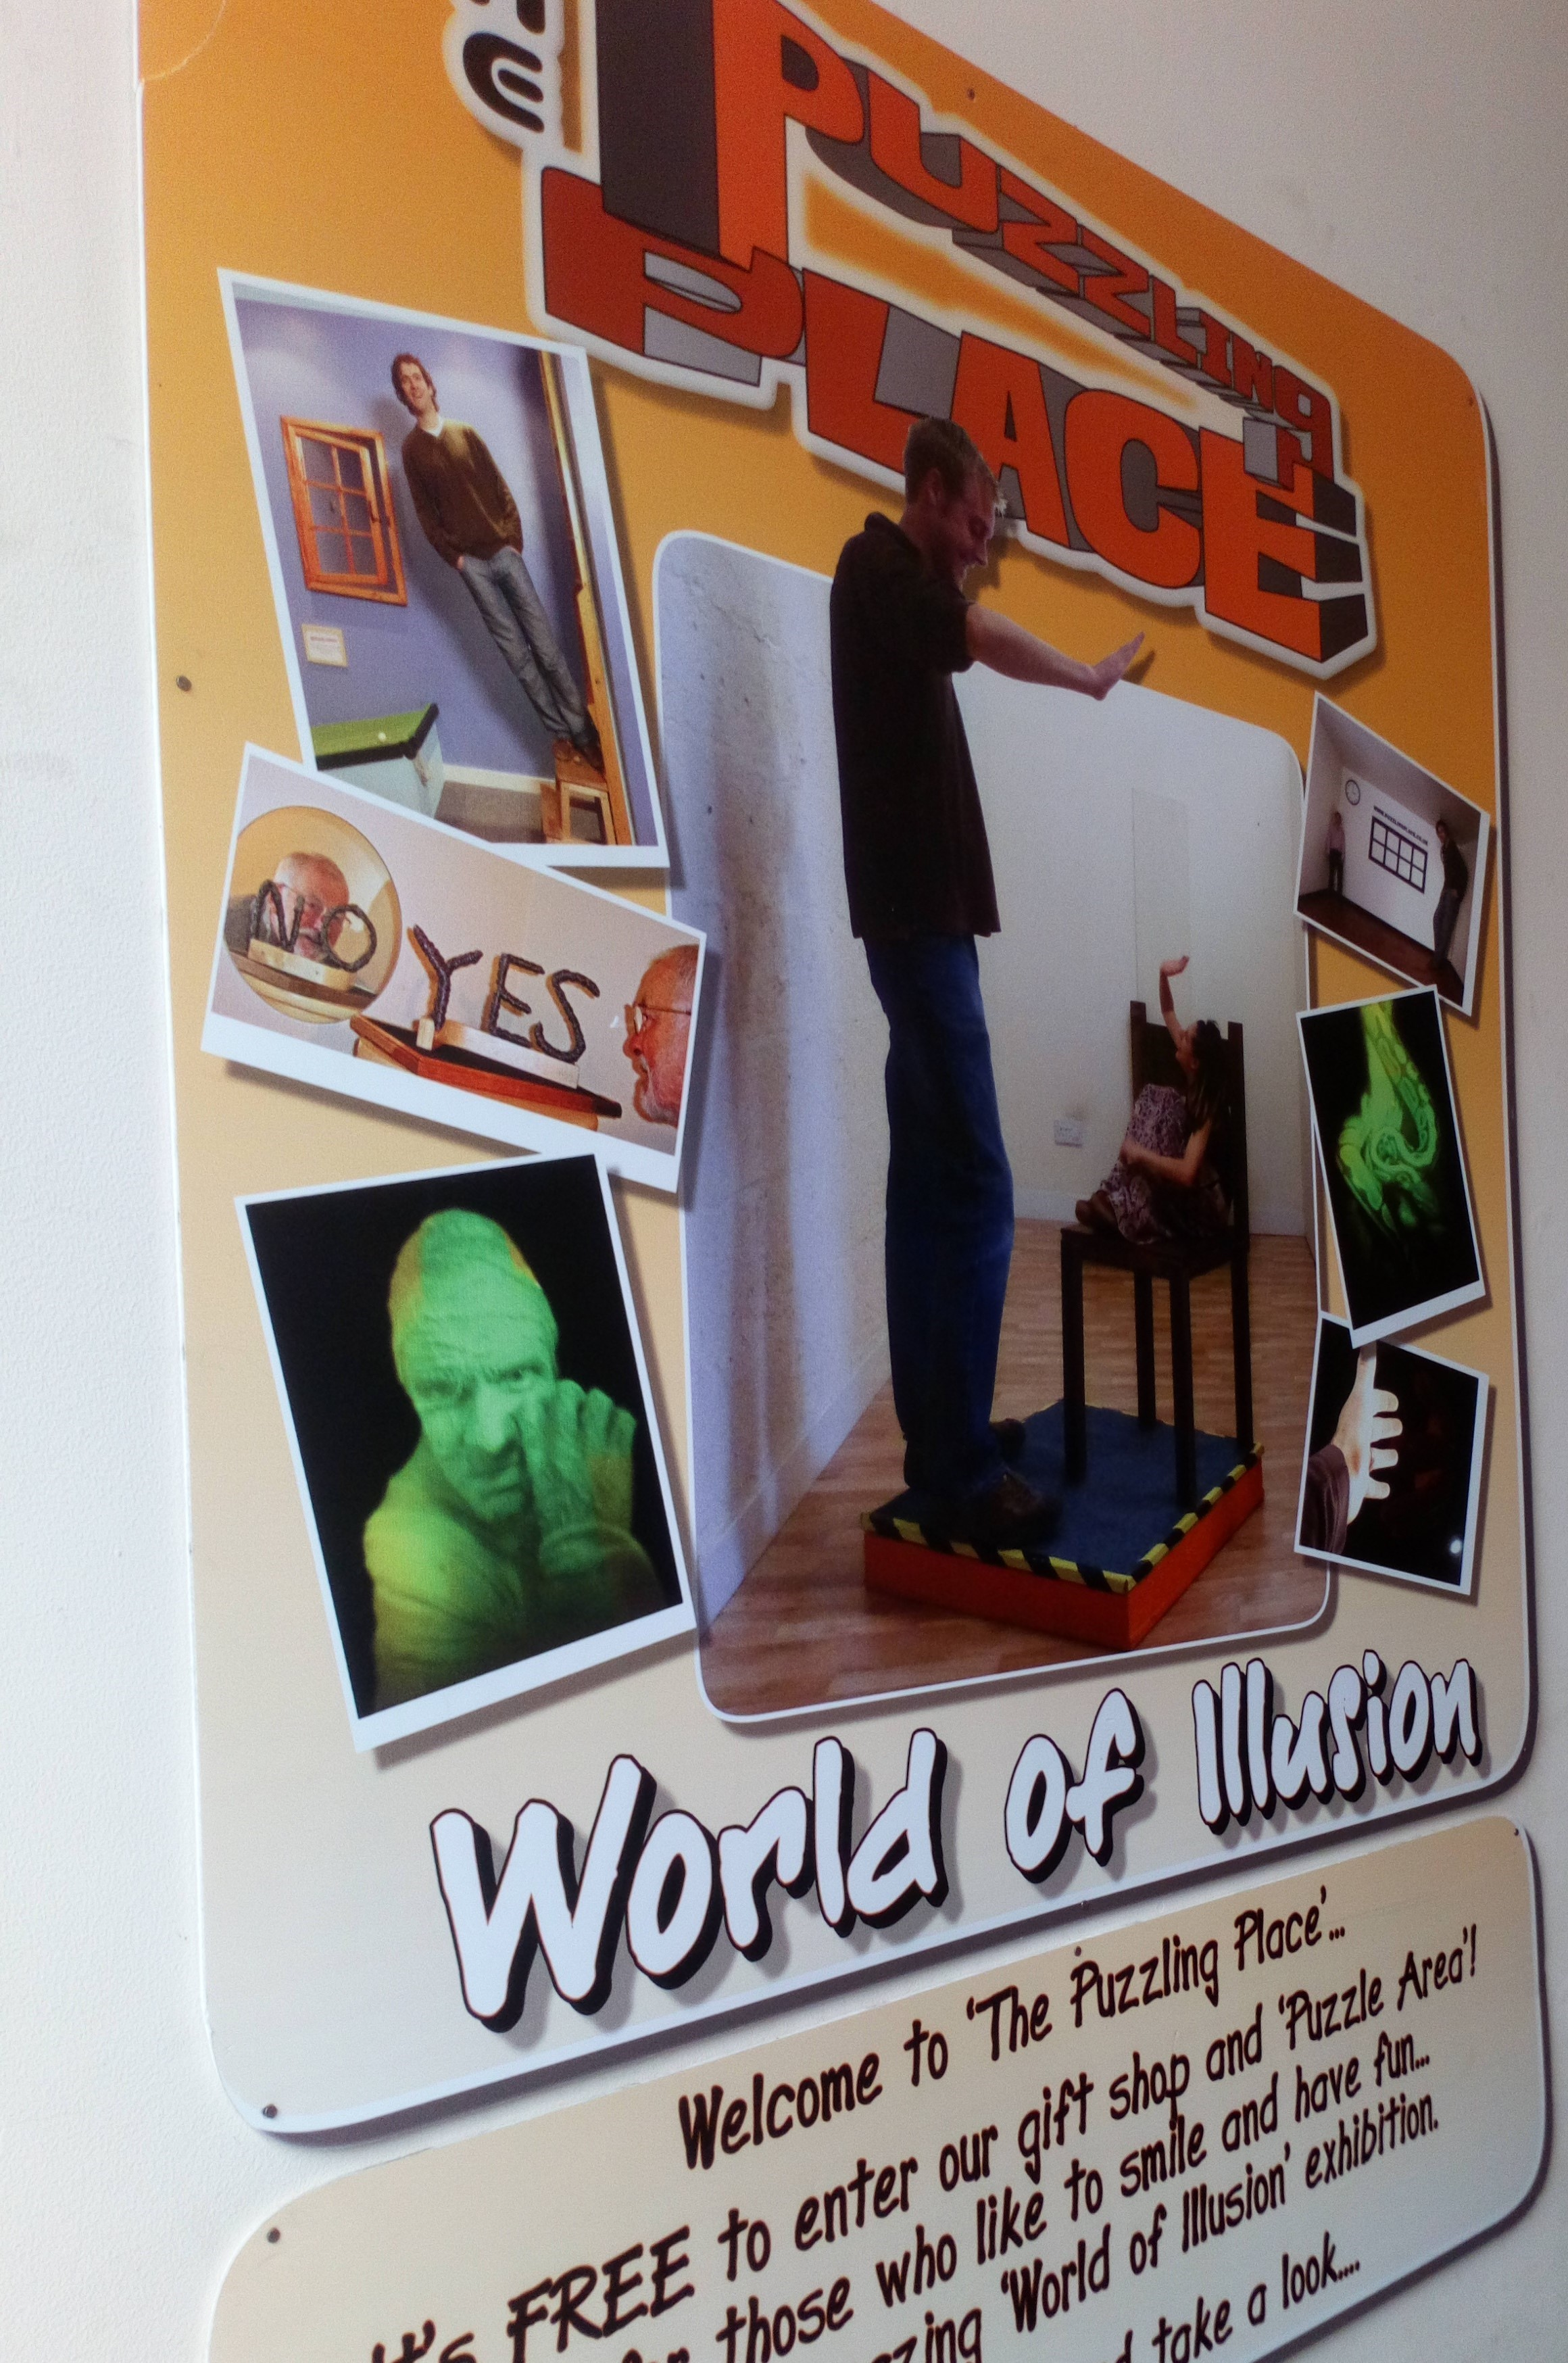 The Puzzling Place    The Puzzling Place houses over 50 incredible interactive illusions providing a world of family fun for all. Whether it is experiencing the country's only anti-gravity room, the illusion distorting Ames Room or being defied by the mesmerising 'eyelusions' exhibition or the Hologram Gallery,  The Puzzling Place is like no other museum you have visited. Come rain or shine this defying world of illusion is well worth a visit during your time in Lakeland.  Museum Square, Keswick, CA12 5DZ  017687 75102